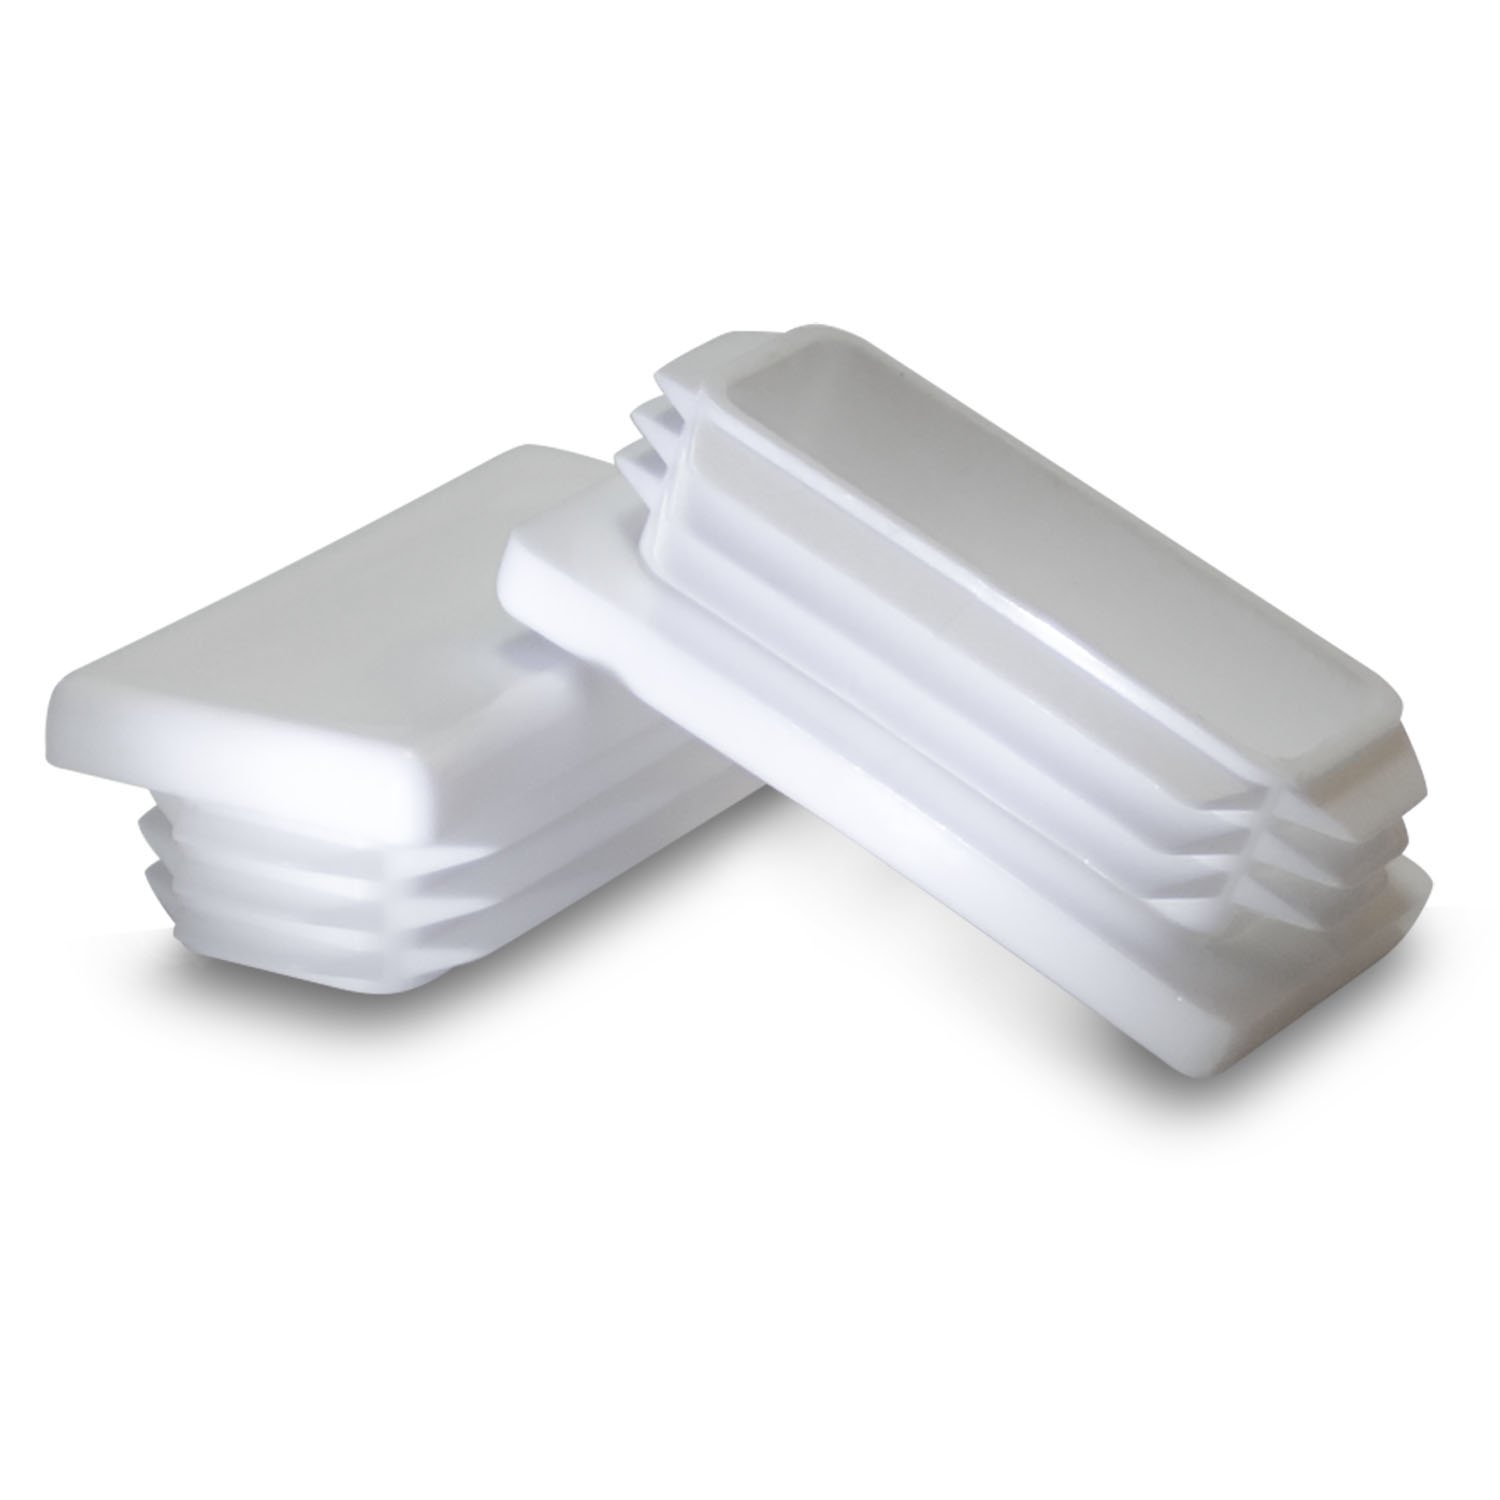 10 Pack: 1 x 2 Inch Rectangle White Plastic Plug End Cap Generic